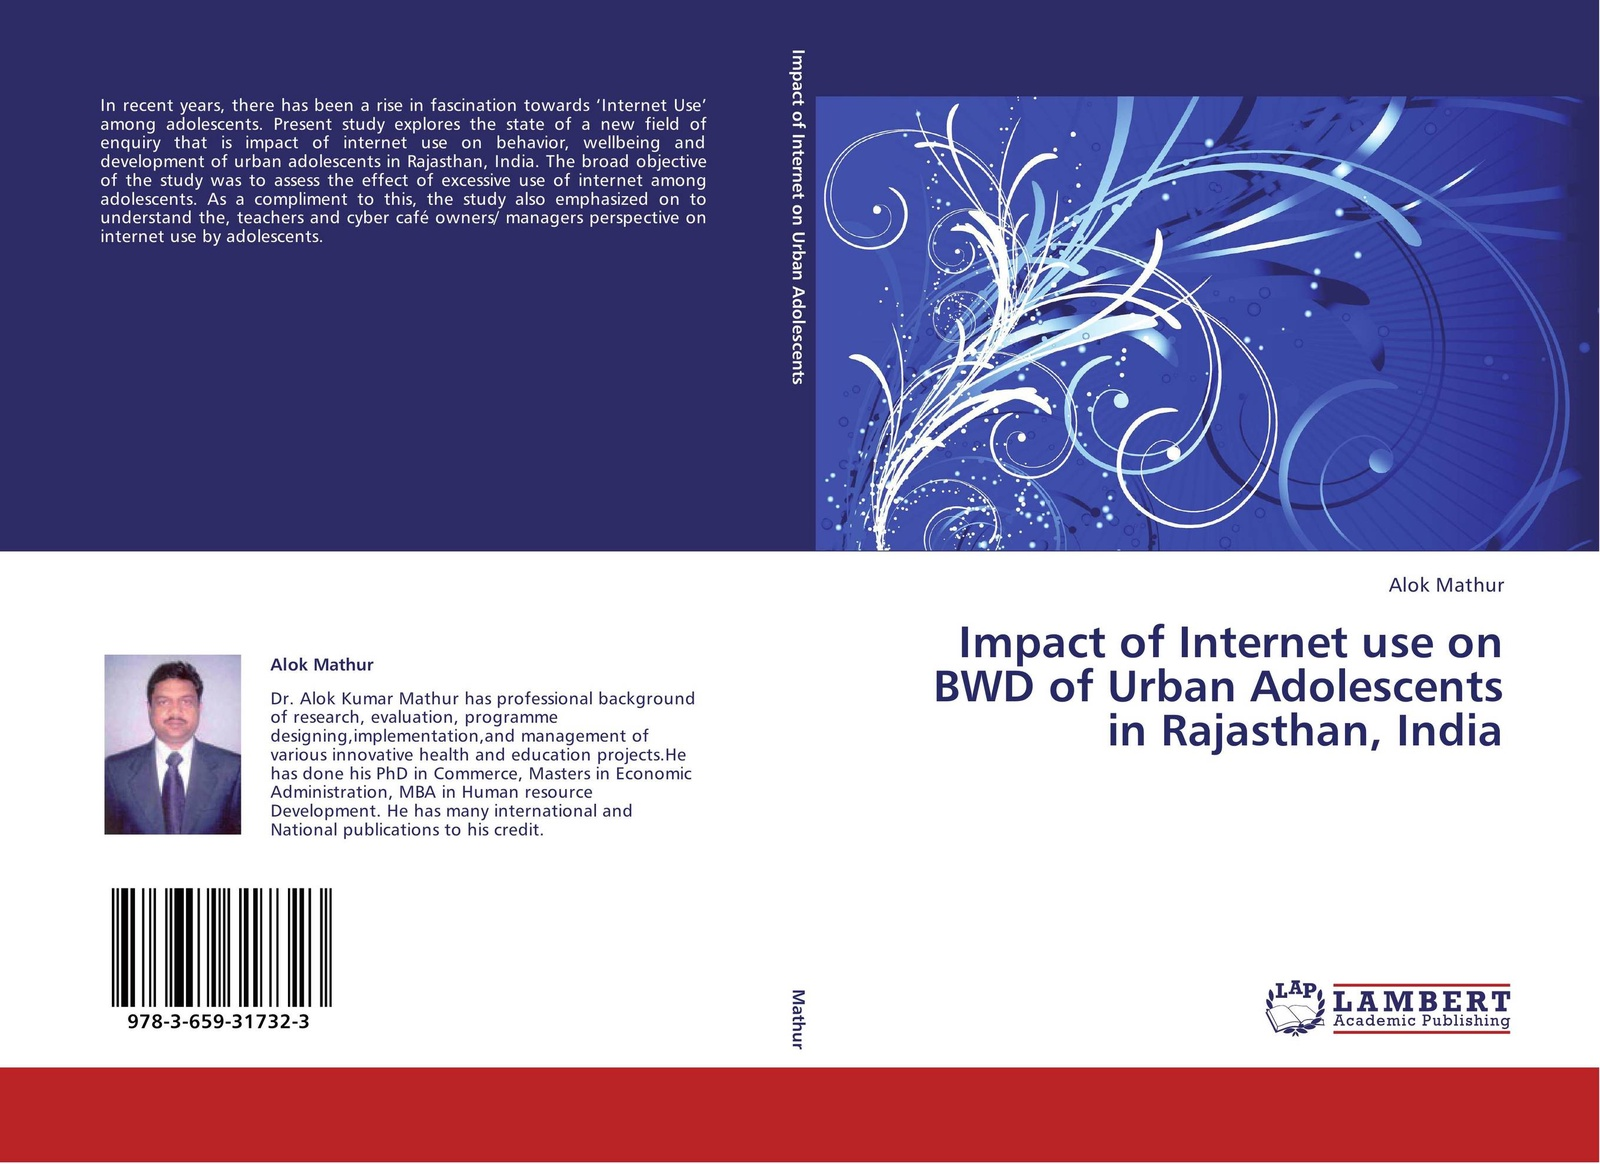 ALOK MATHUR Impact of Internet use on BWD of Urban Adolescents in Rajasthan, India